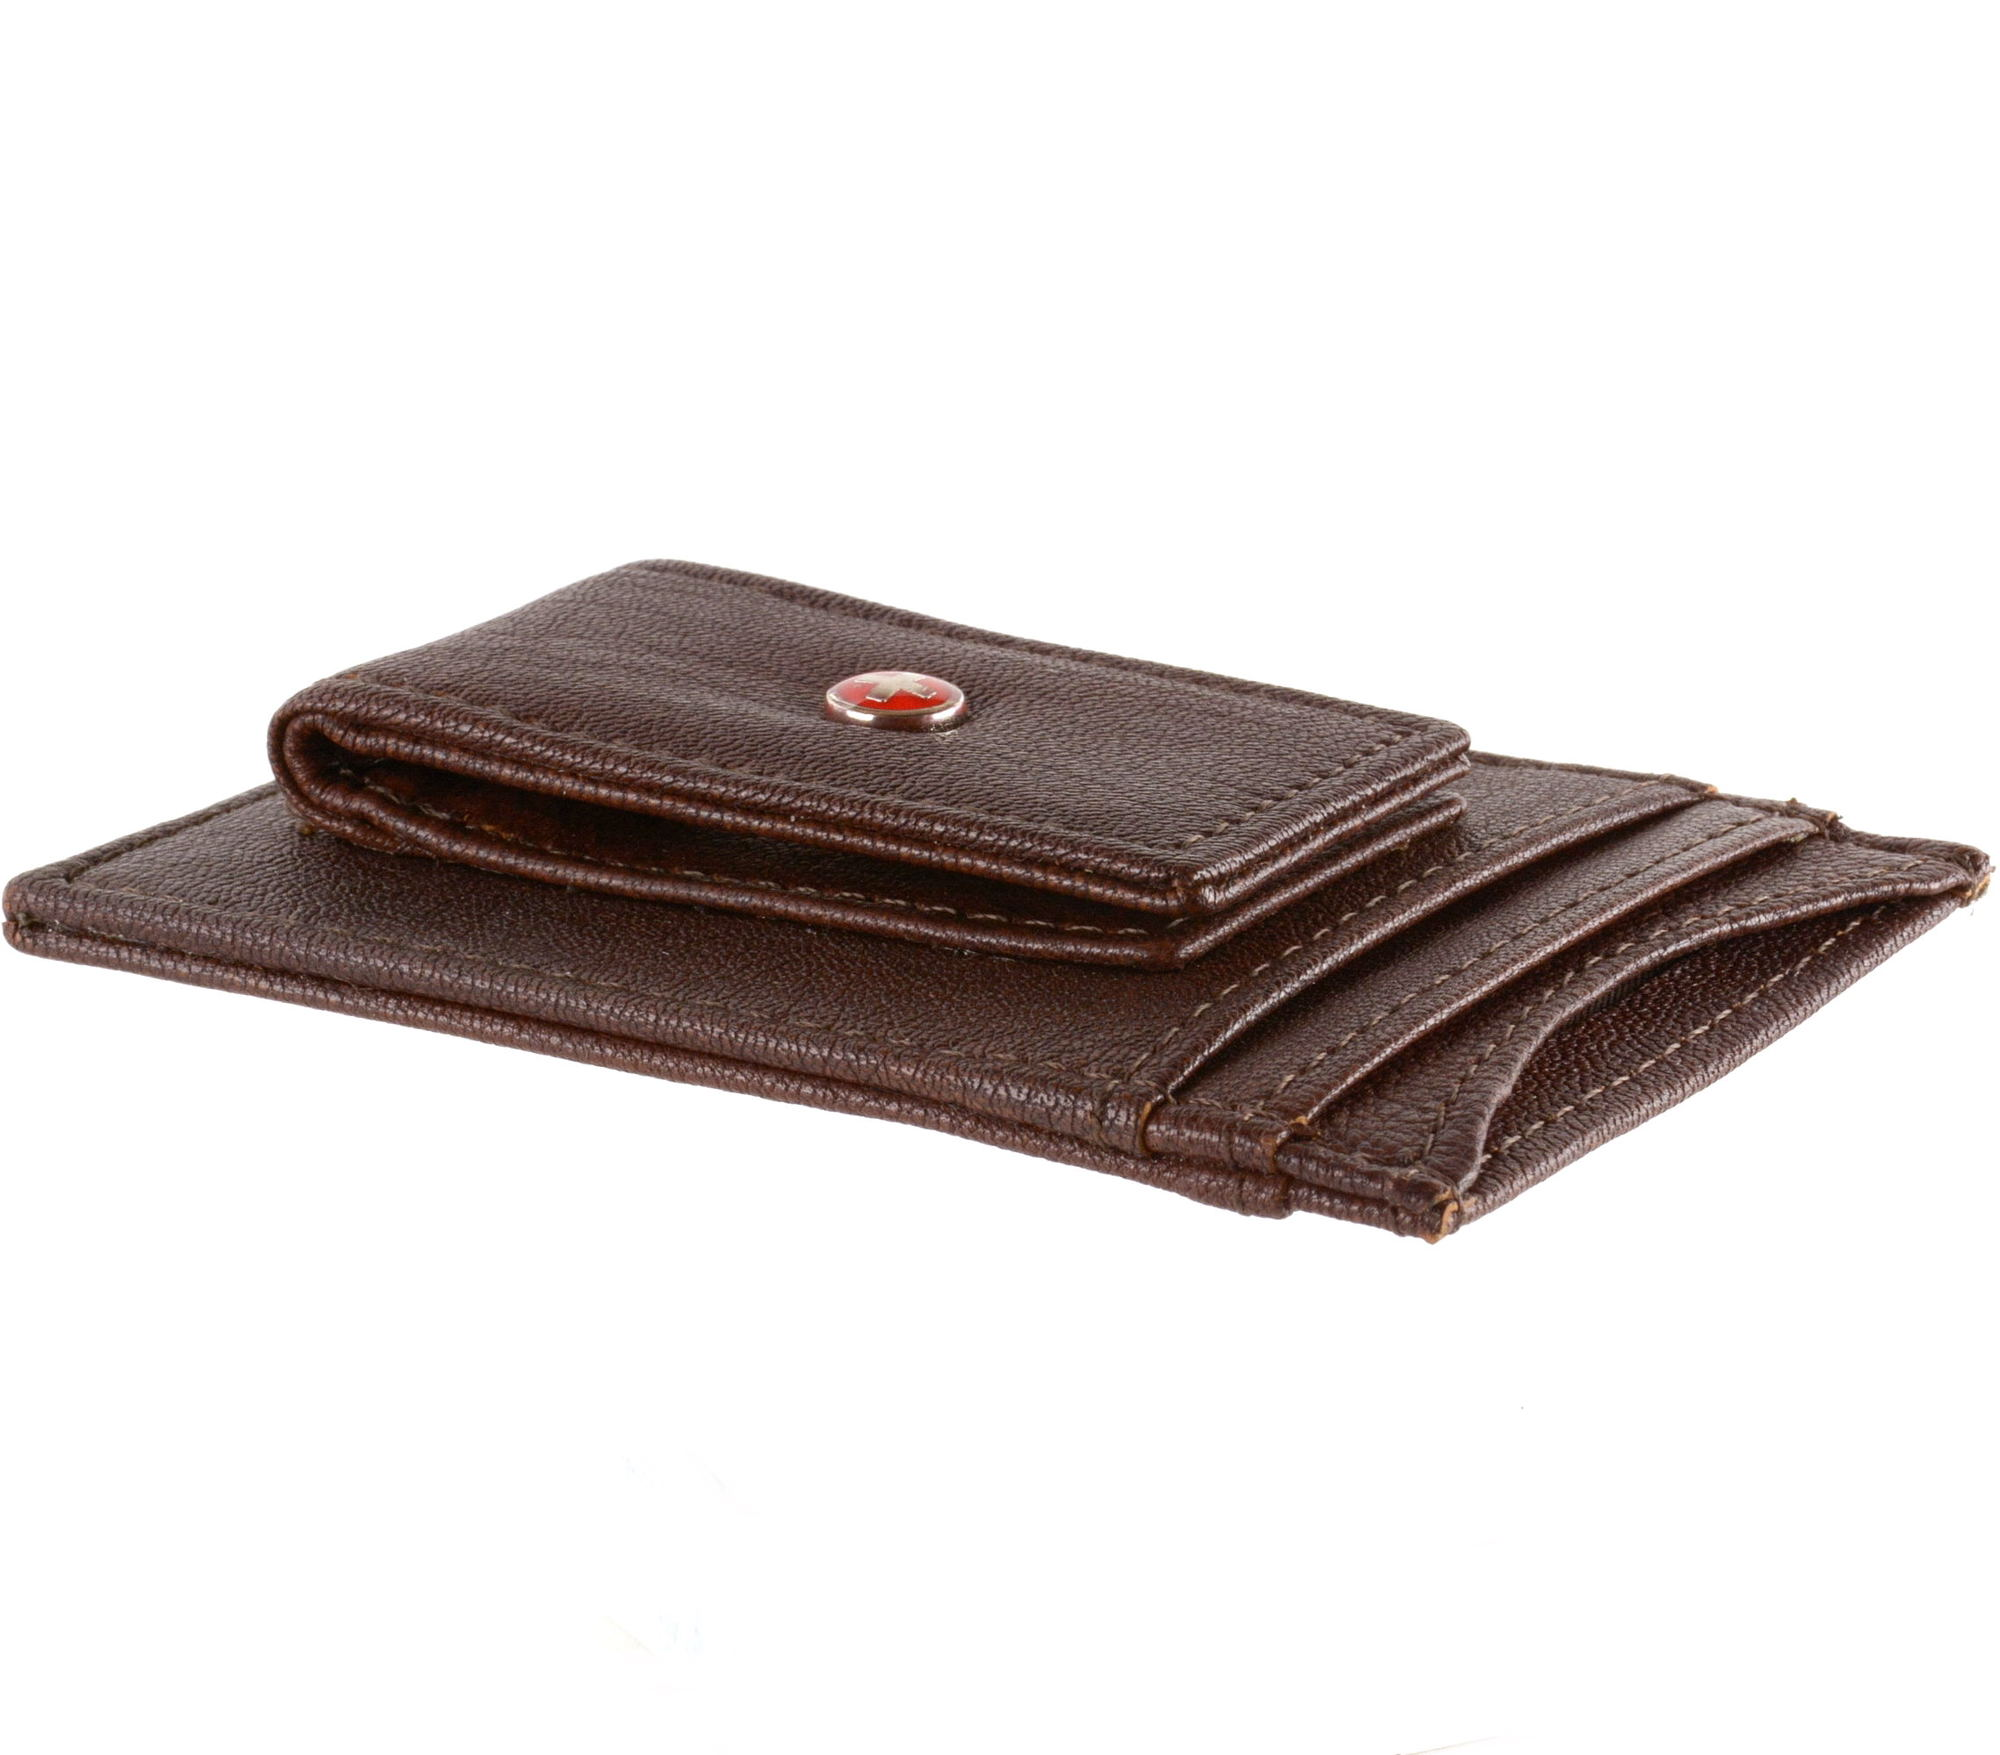 AlpineSwiss-Mens-Leather-Money-Clip-Magnet-Front-Pocket-Wallet-Slim-ID-Card-Case thumbnail 15